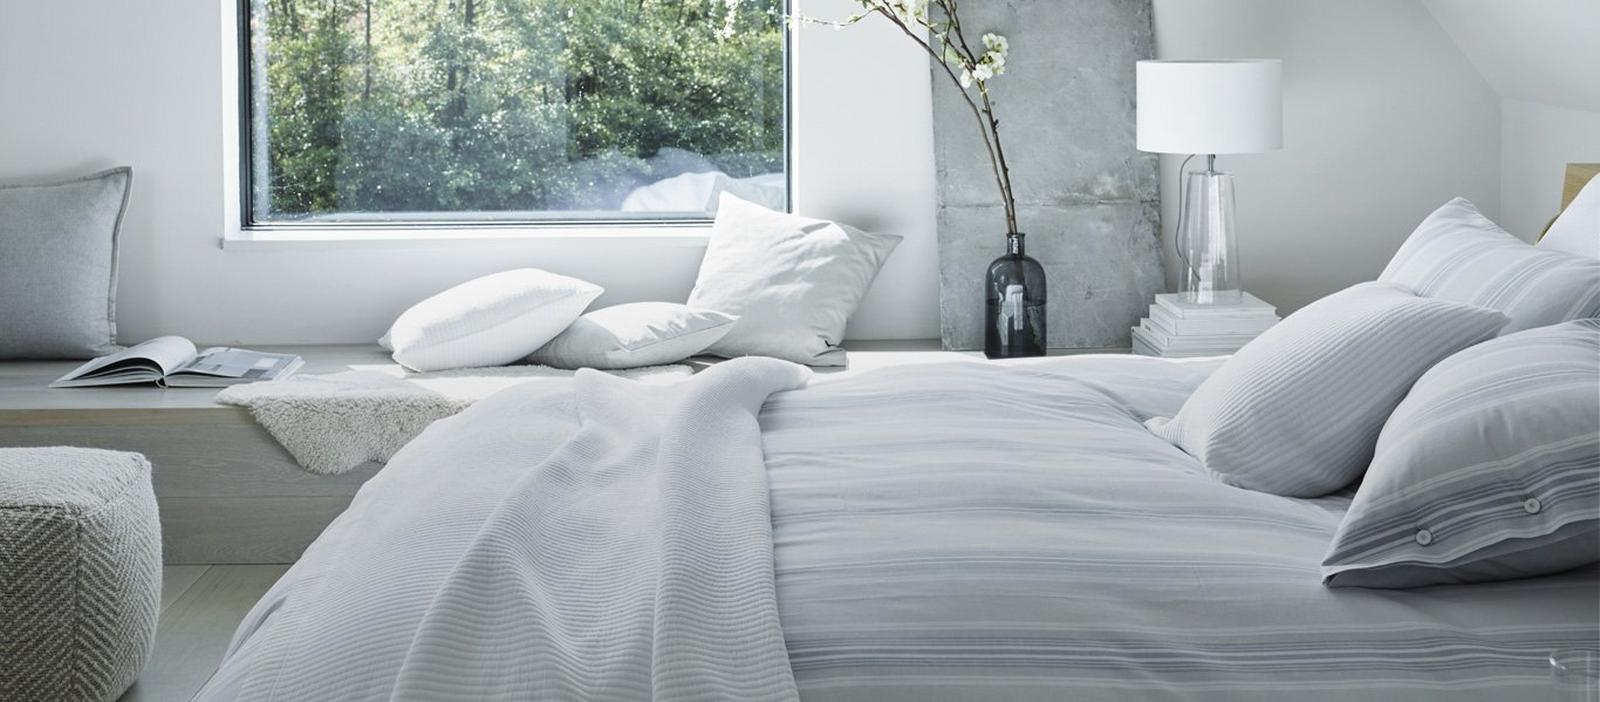 Best Bed Sheets Reviews and Buying Guide by www.snoremagazine.com